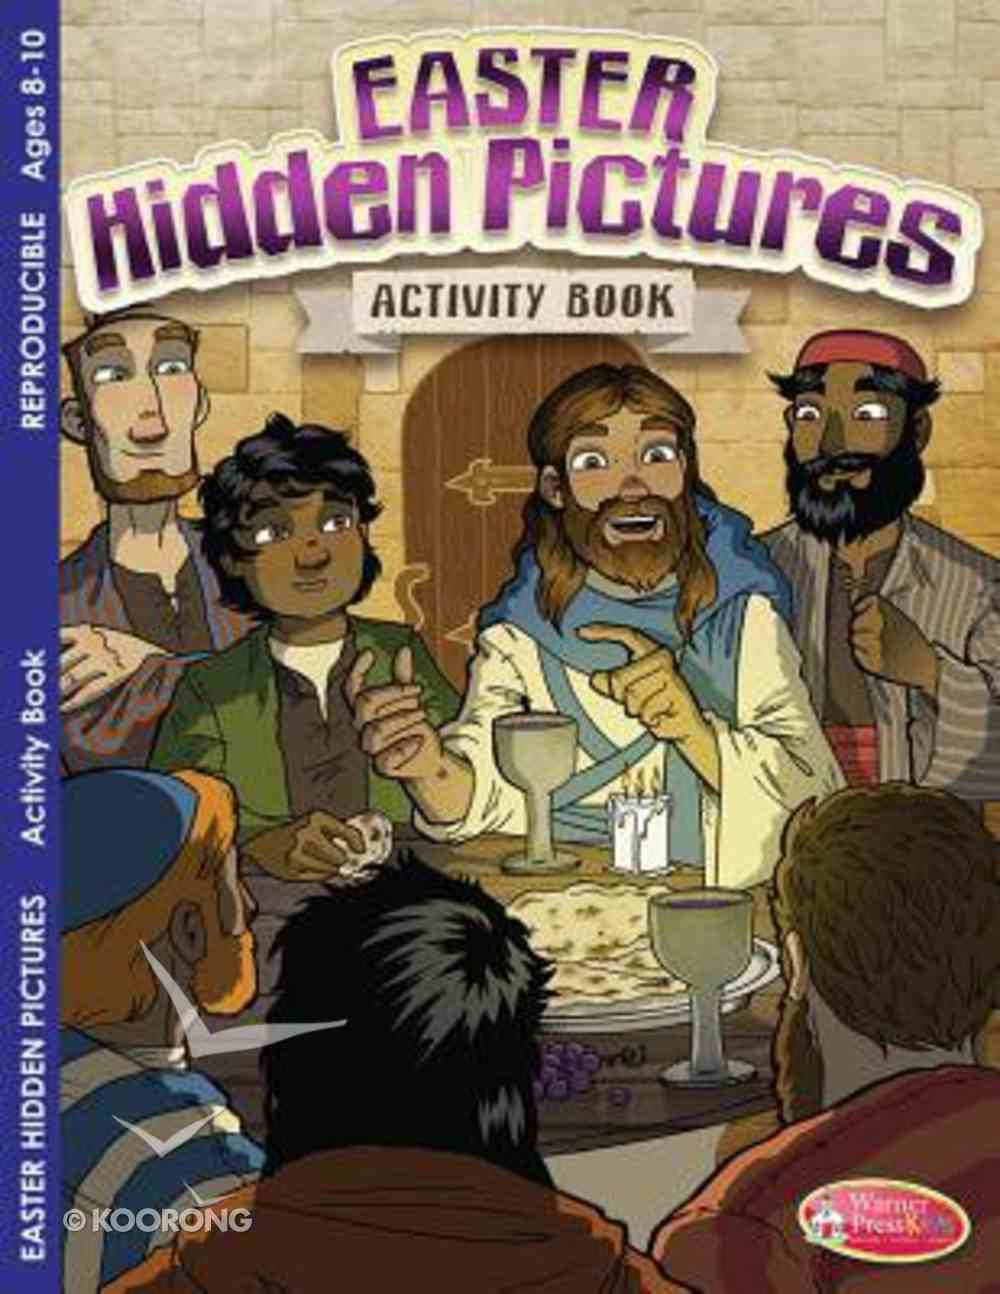 Easter Hidden Pictures Activity Book (Ages 8-10, Reproducible) (Warner Press Colouring & Activity Books Series) Paperback